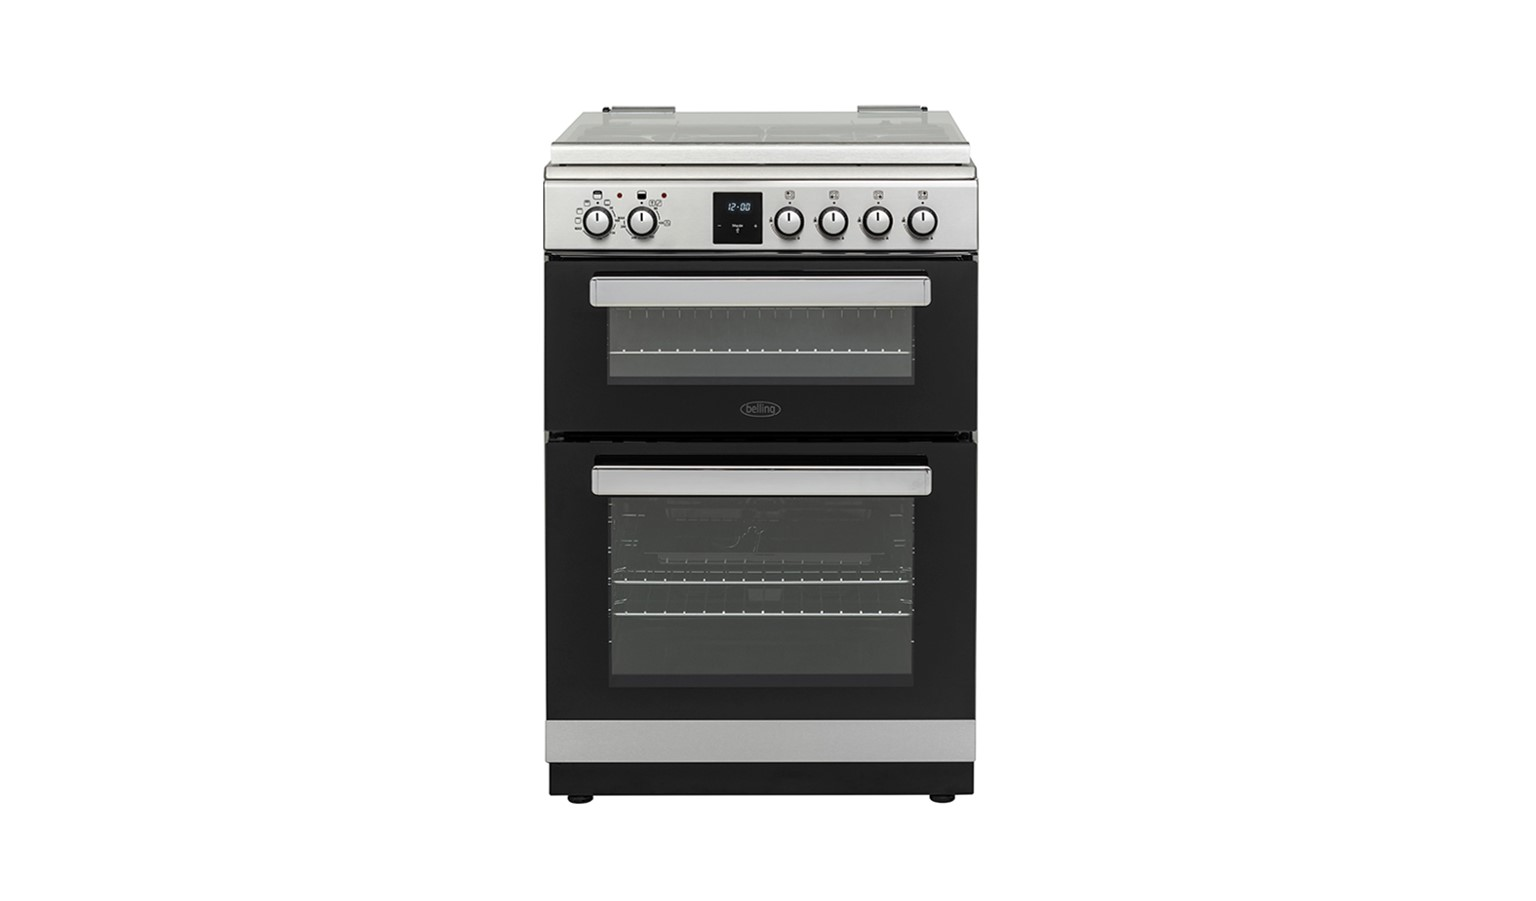 Belling FSDF608DC 60cm Dual Fuel Cooker - Stainless Steel/Black